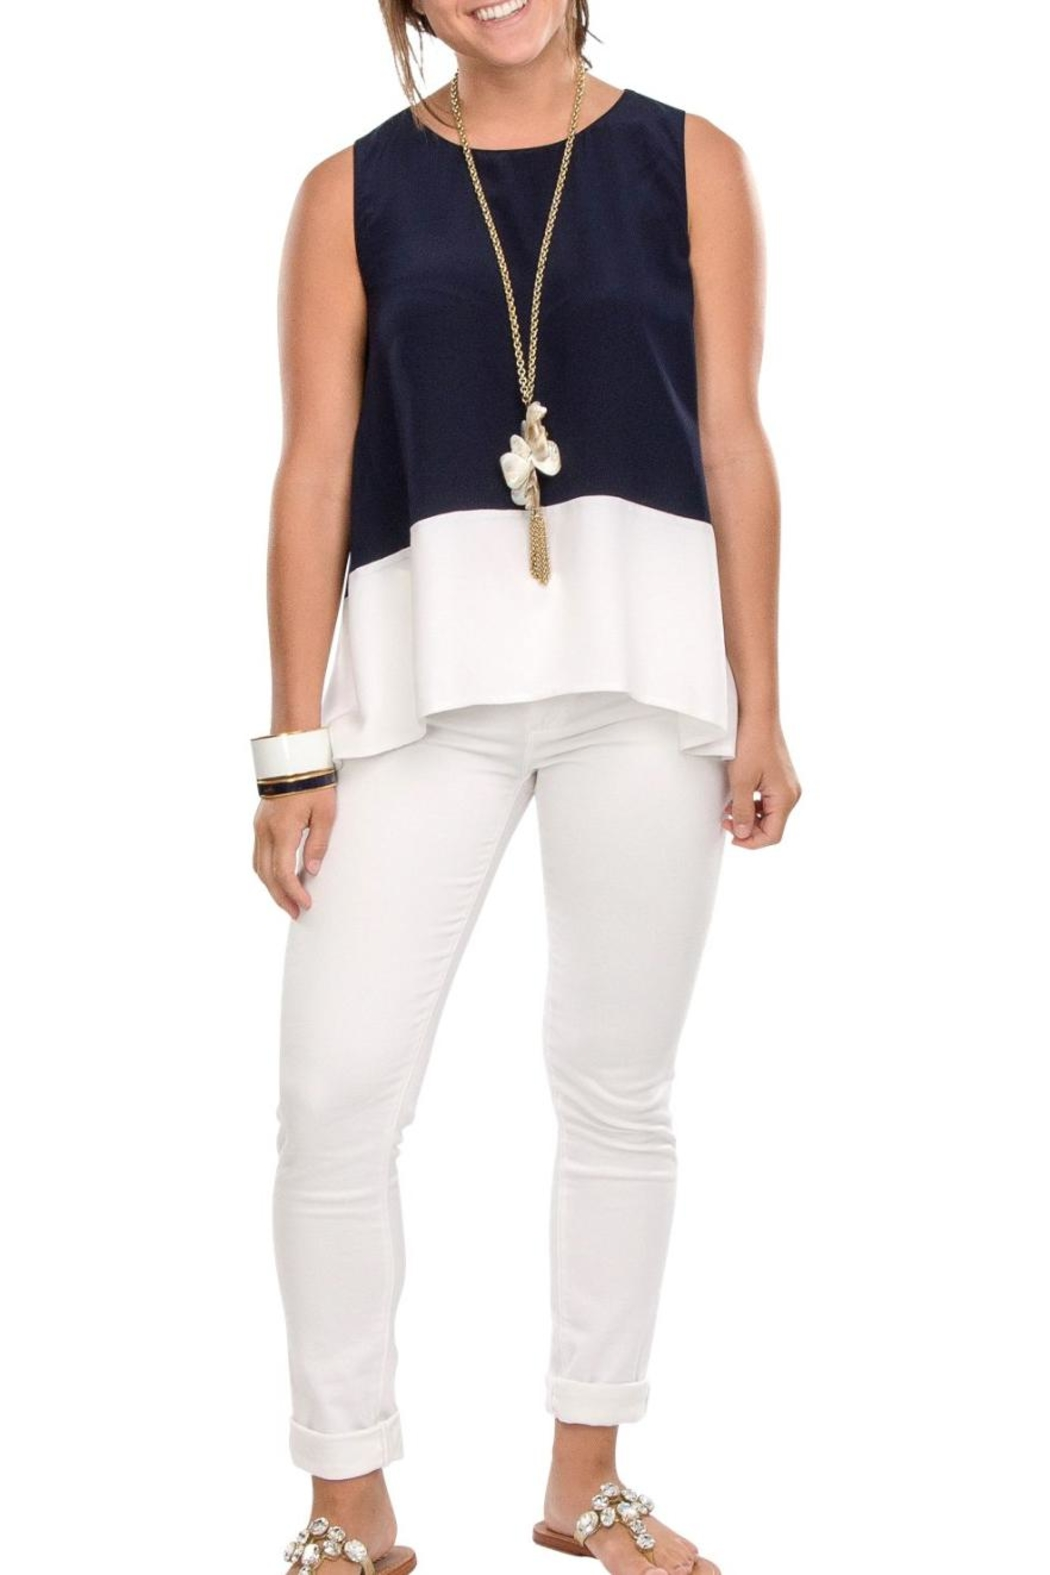 Cortland Park Color Block Tank Top - Front Cropped Image